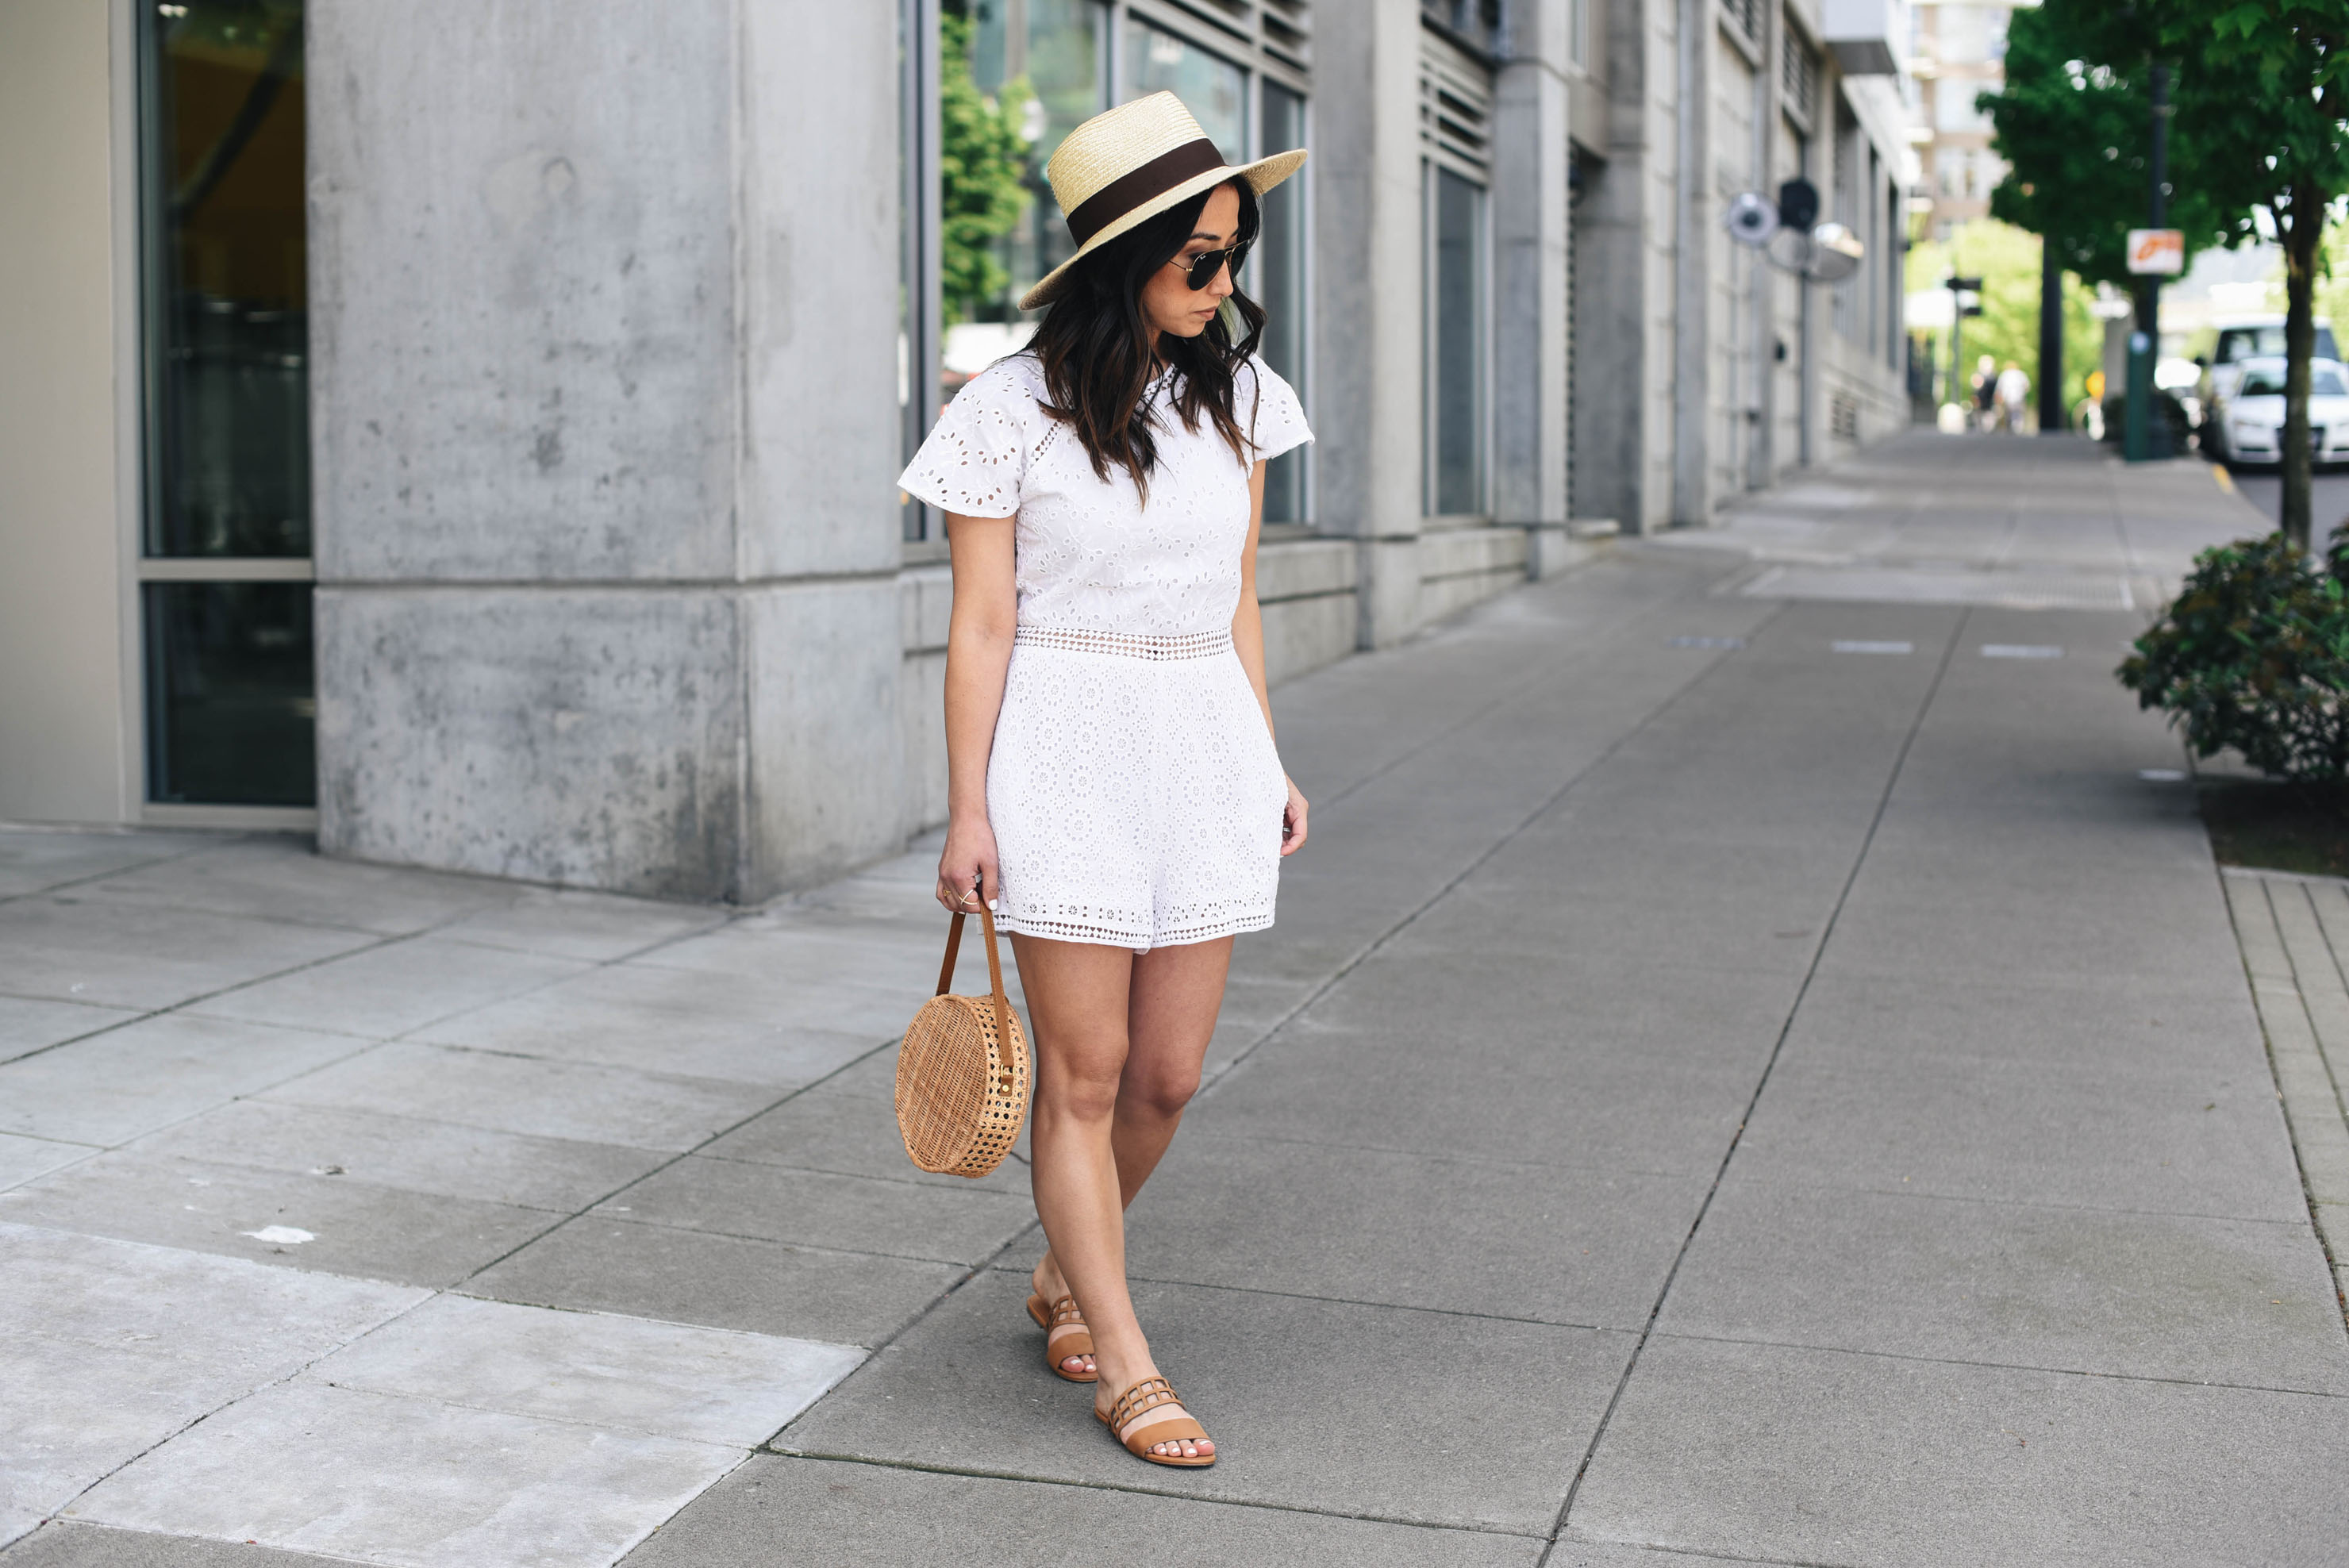 This summer's best rompers